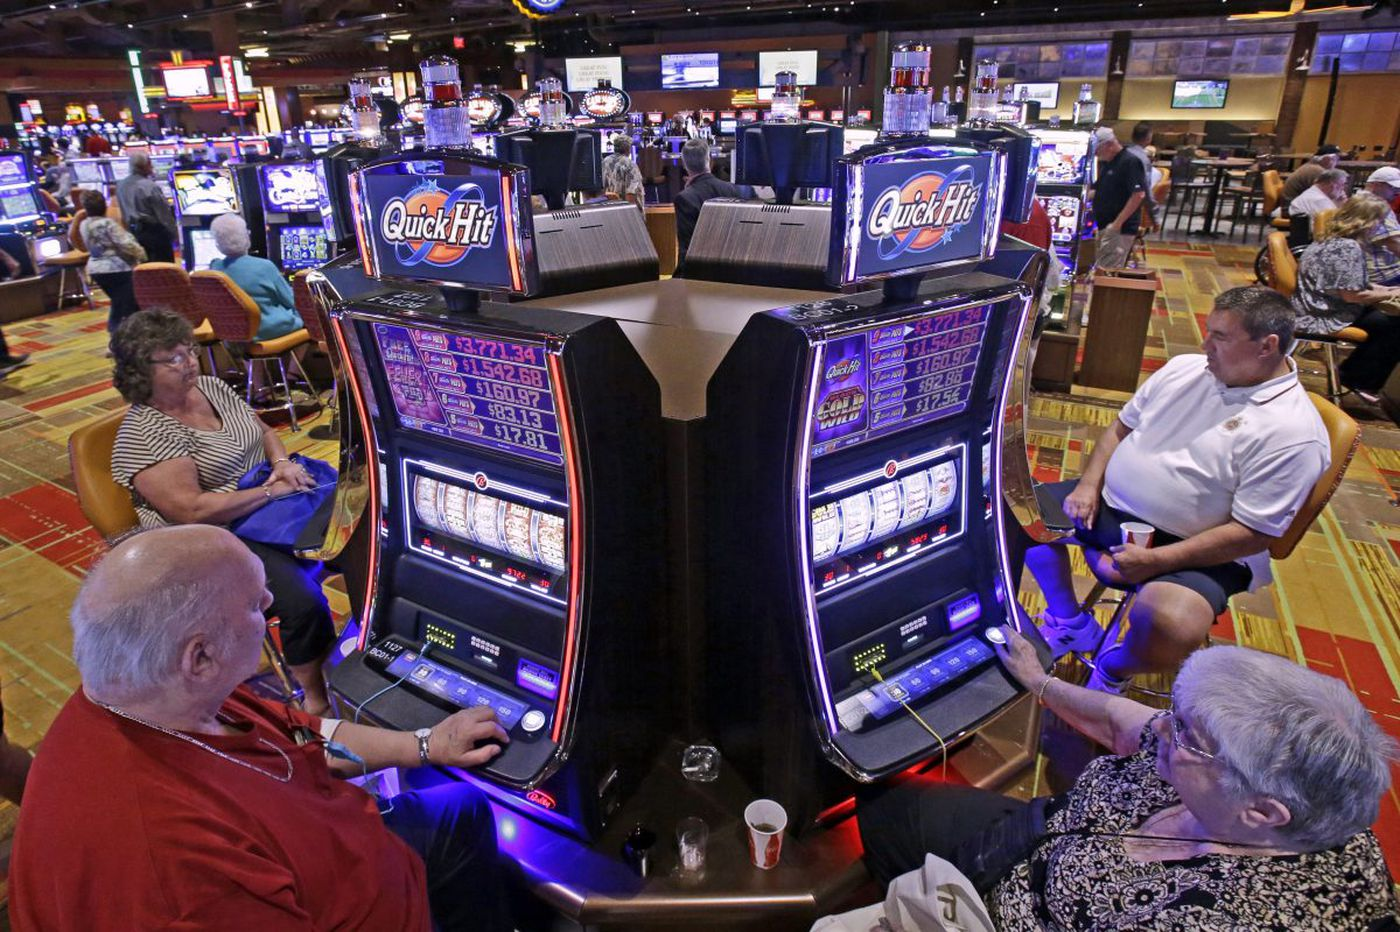 Philadelphia City Council votes 17-0 to reject video gaming terminals and mini-casinos